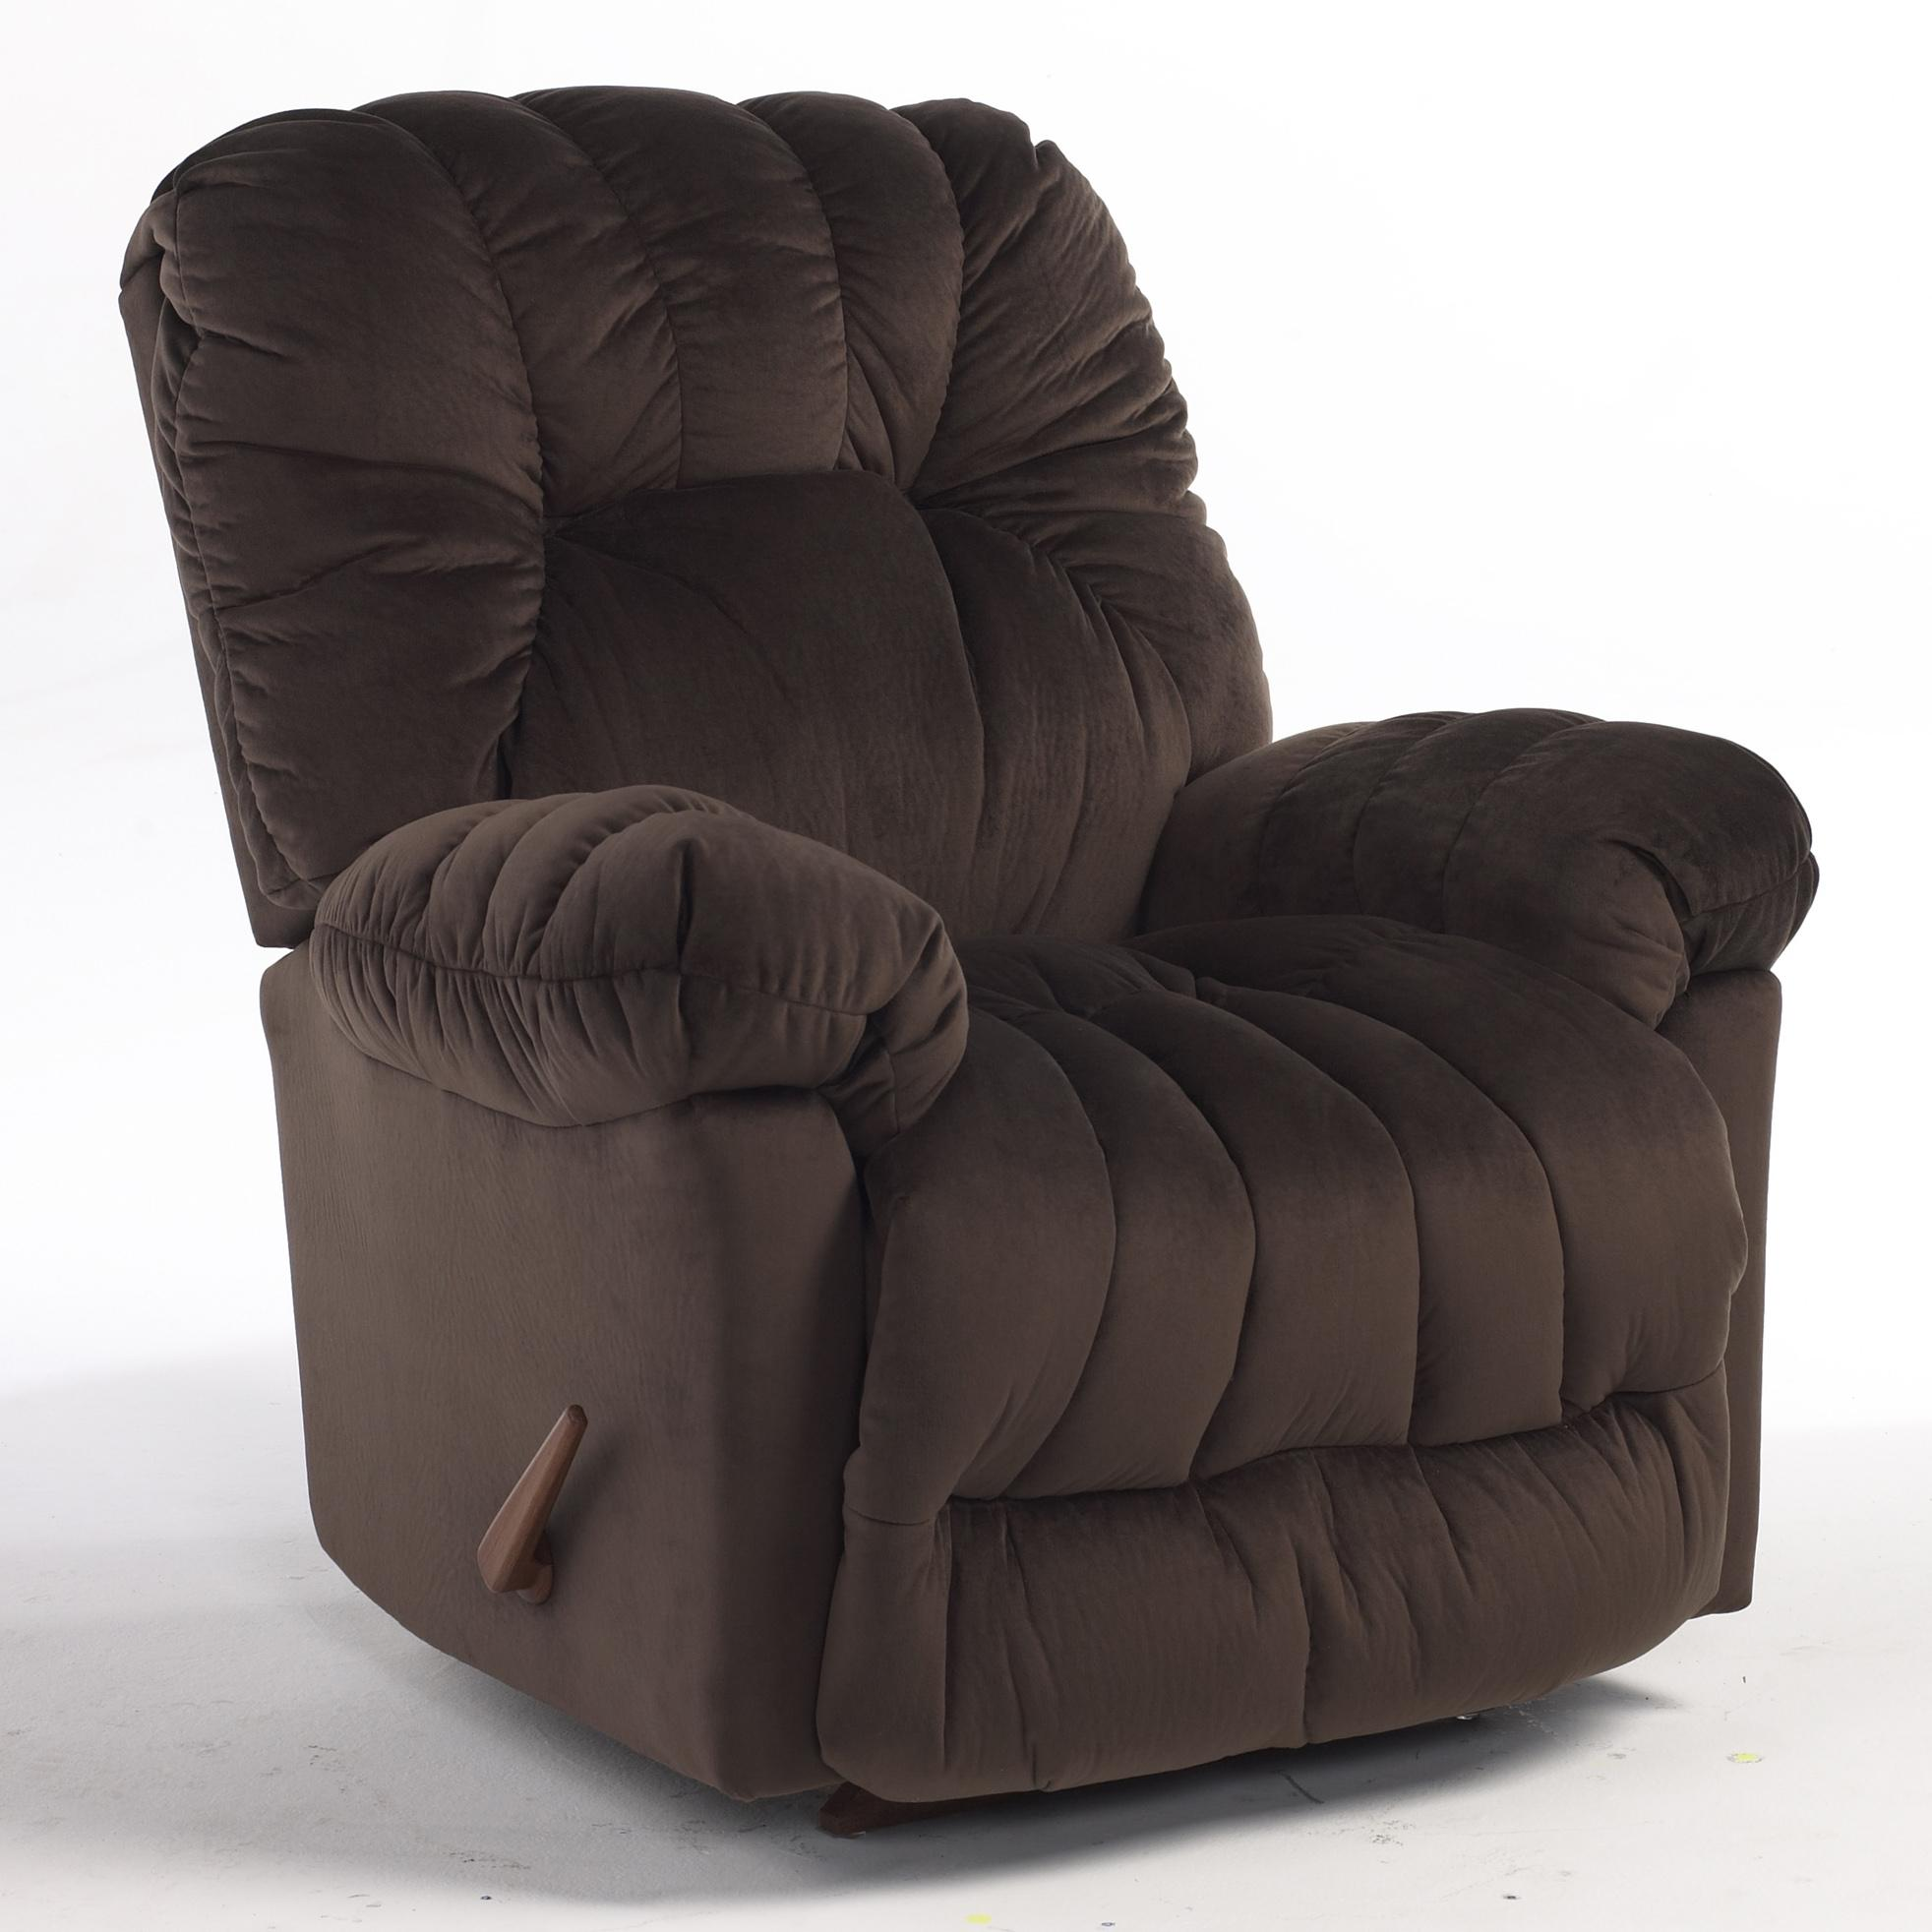 Conen Power Rocking Reclining Chair By Best Home